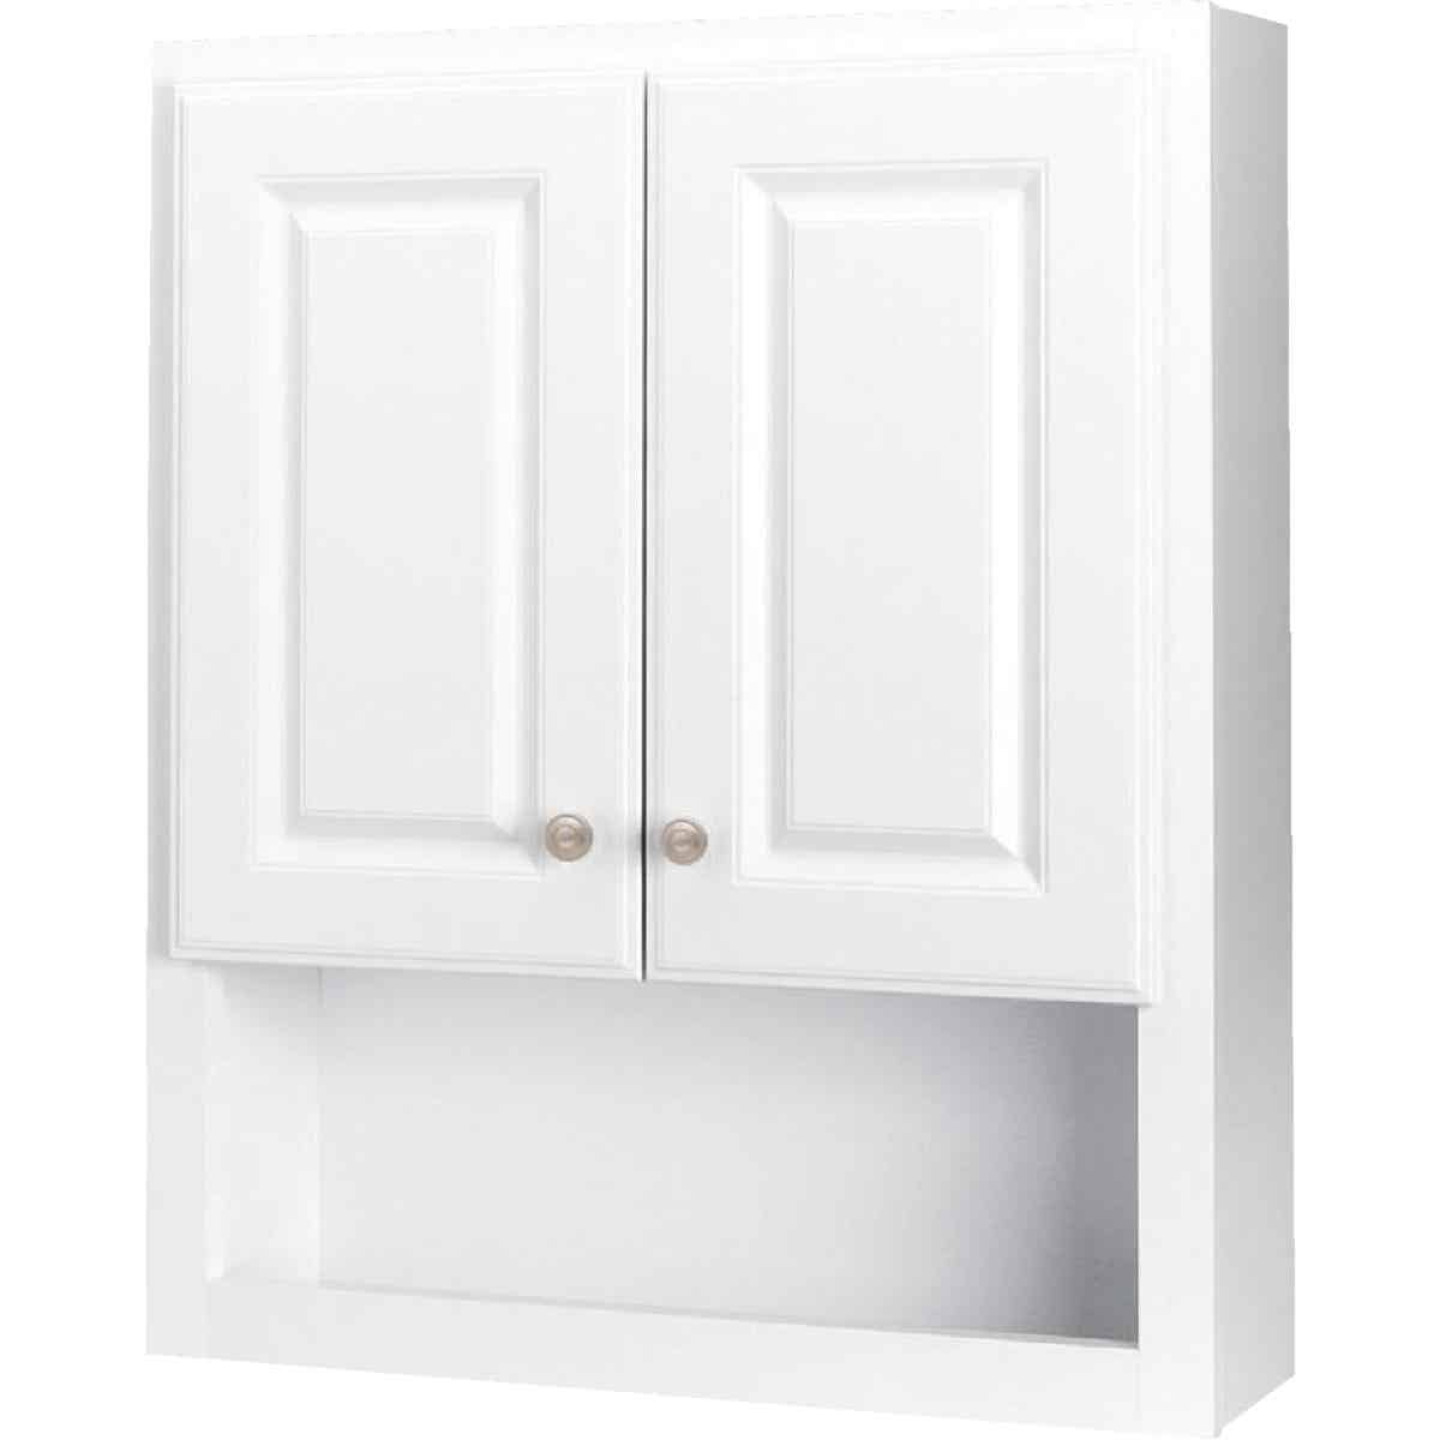 Continental Cabinets Modular Semi-Gloss White Finish 23-1/4 In. W. x 28 In. H. x 7-1/4 In. D. Wood Wall Bath Cabinet Image 3